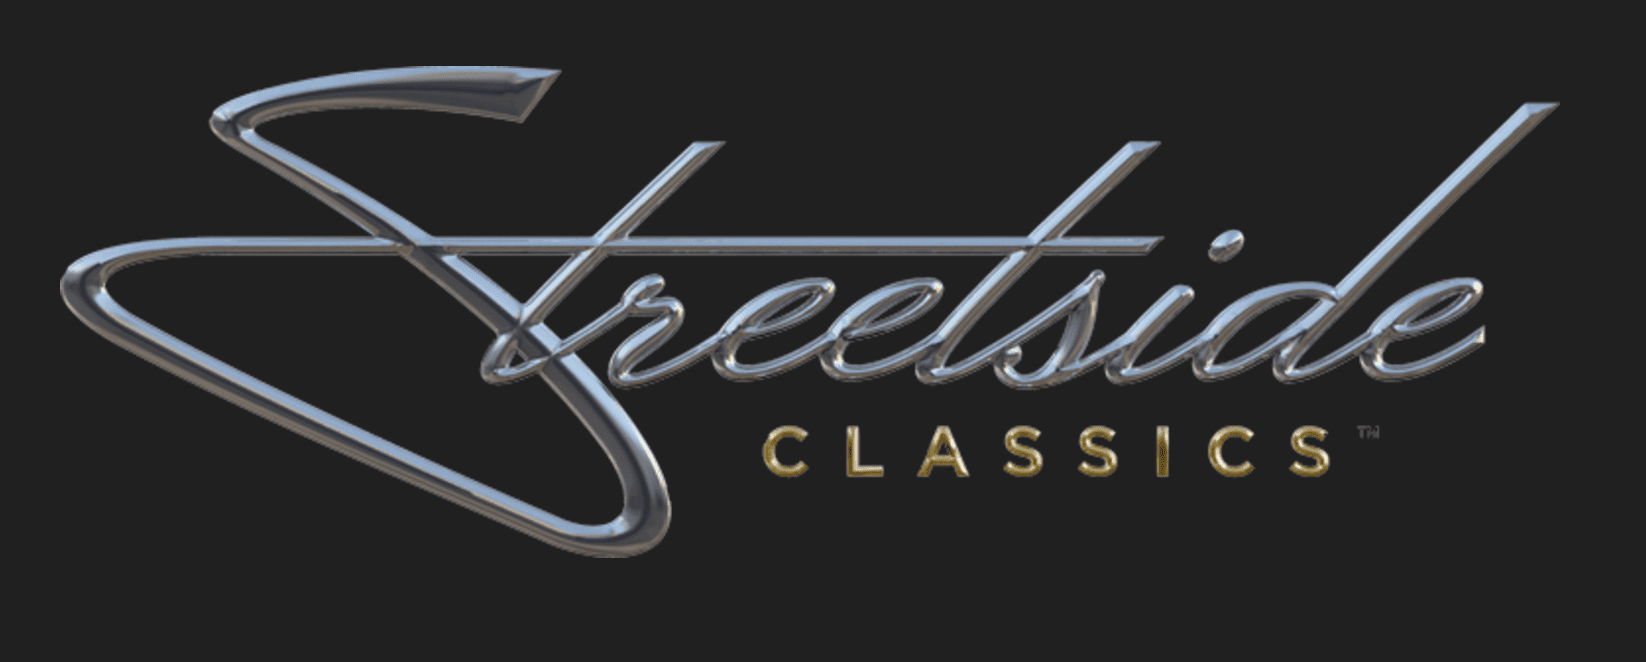 Studebaker Classic Cars For Sale | AllCollectorCars com